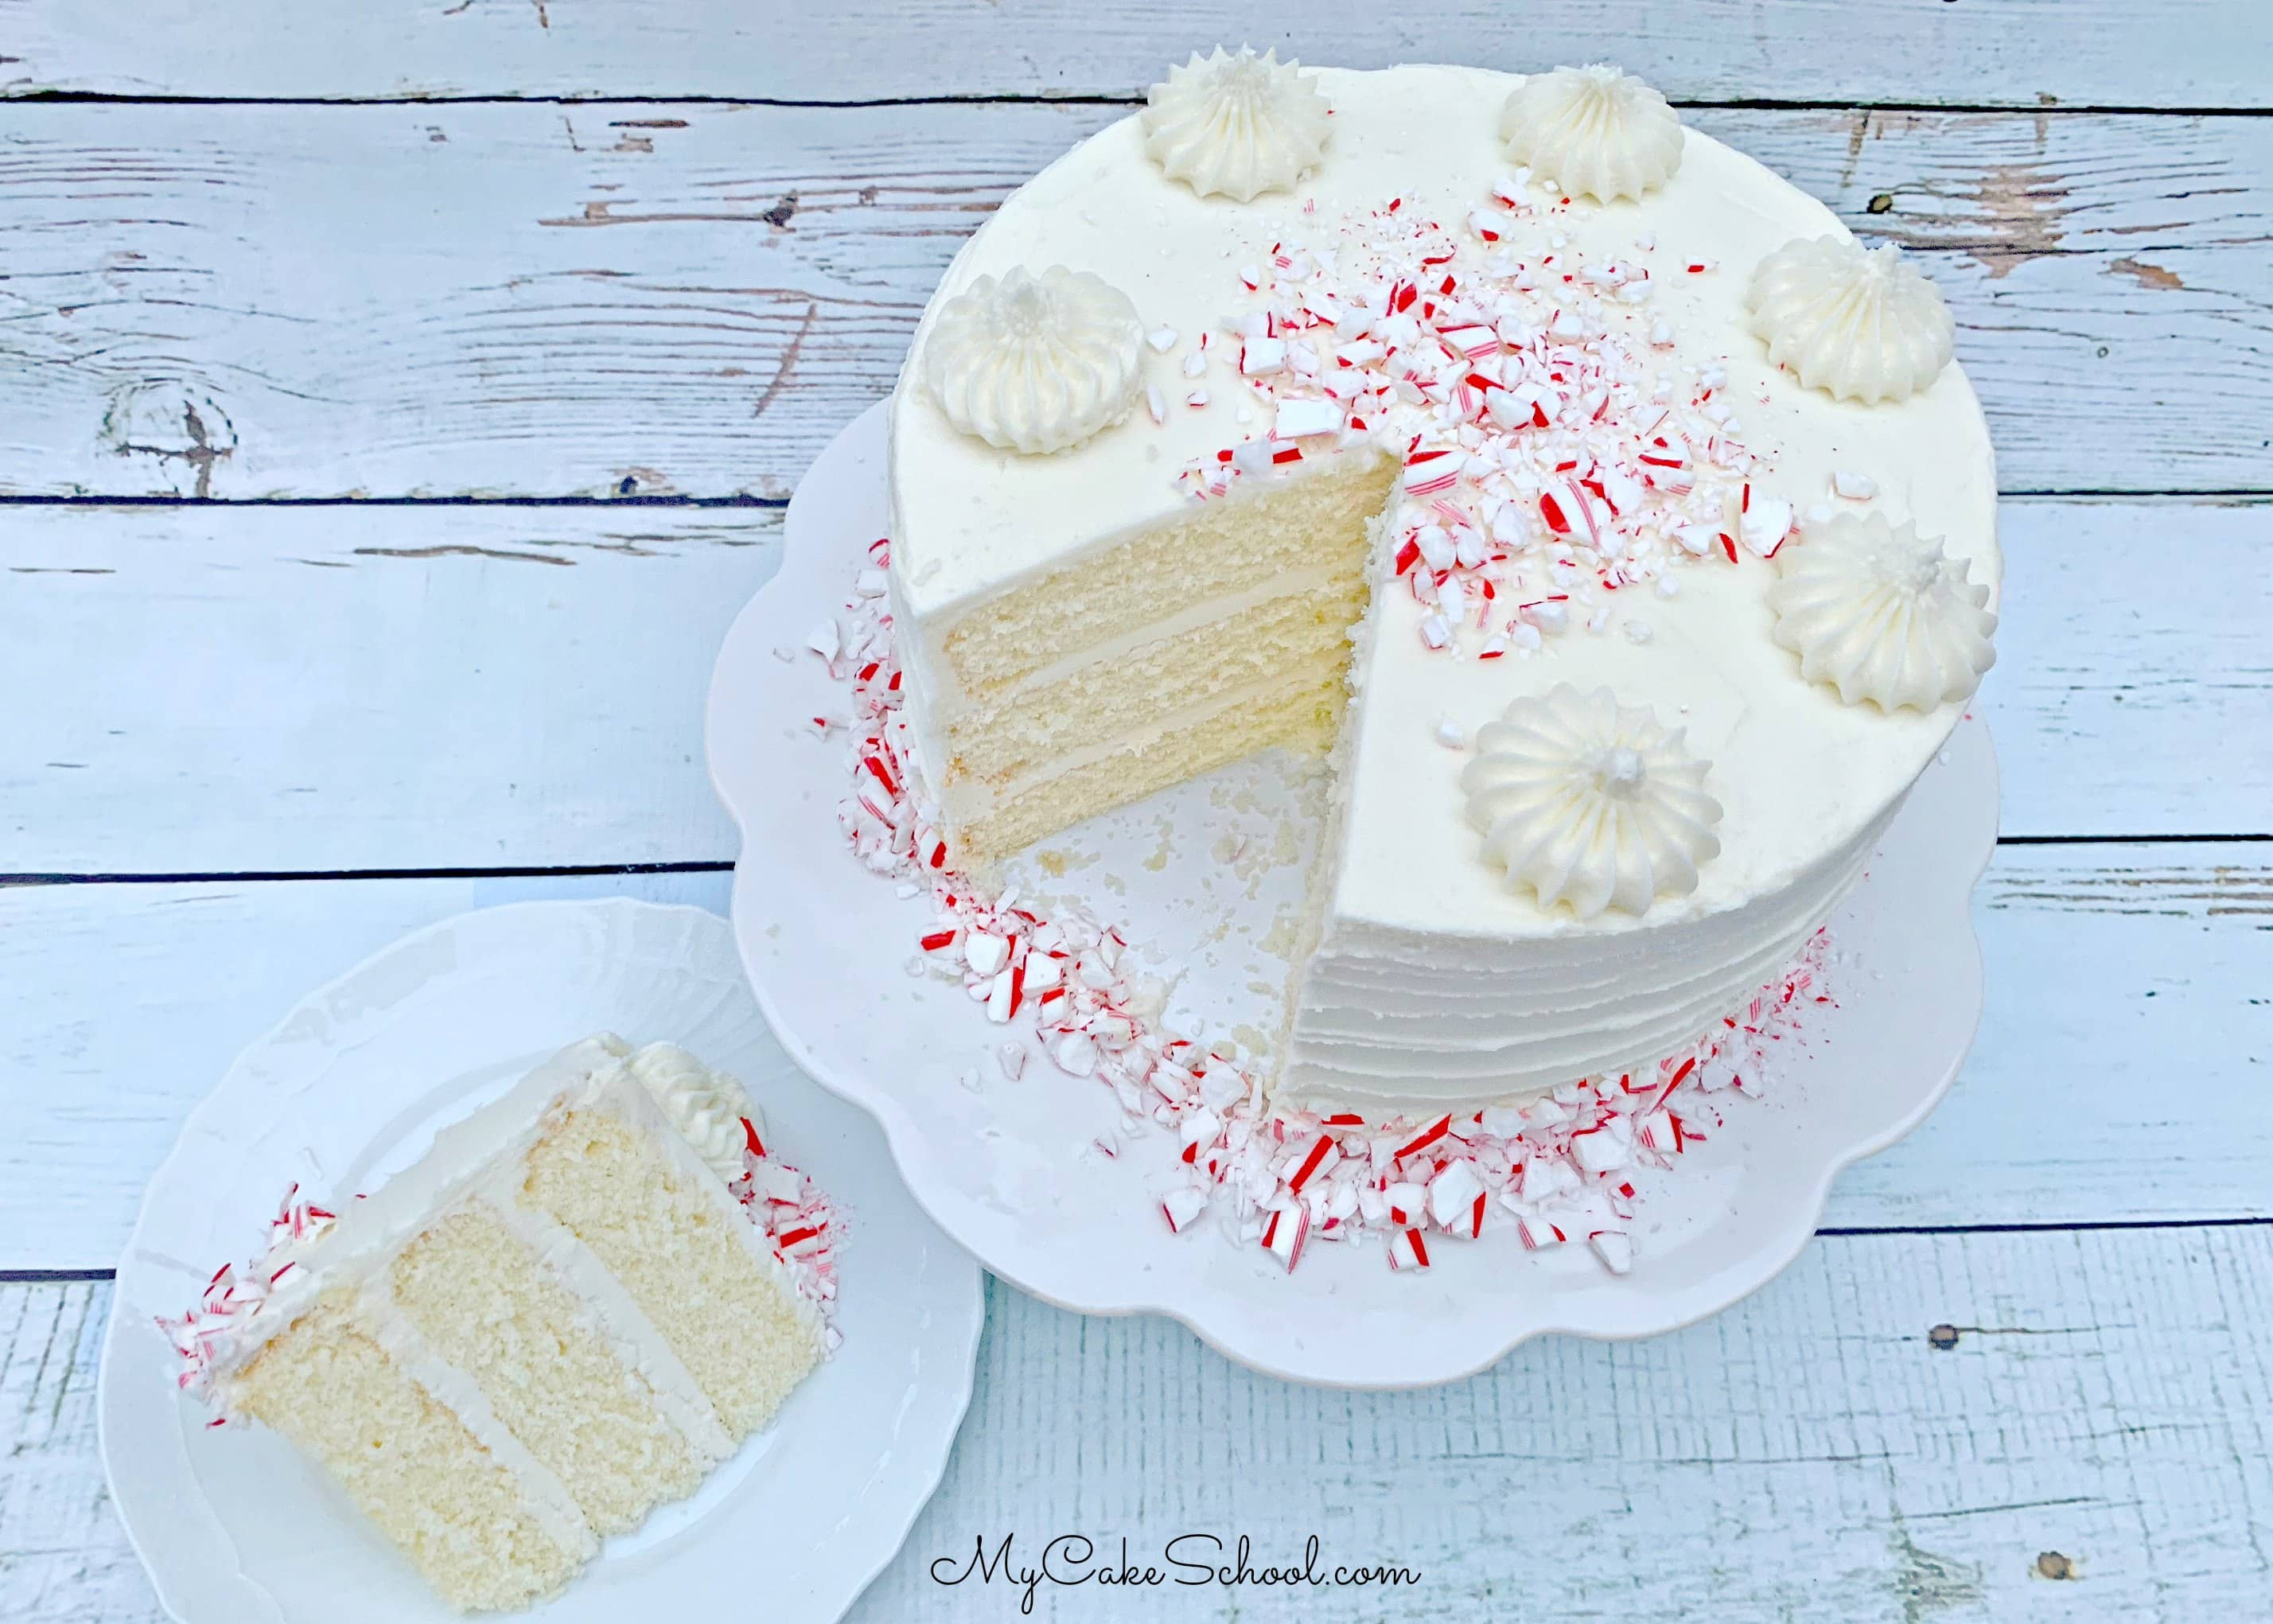 White Chocolate Peppermint Cake is perfect for Christmas parties!